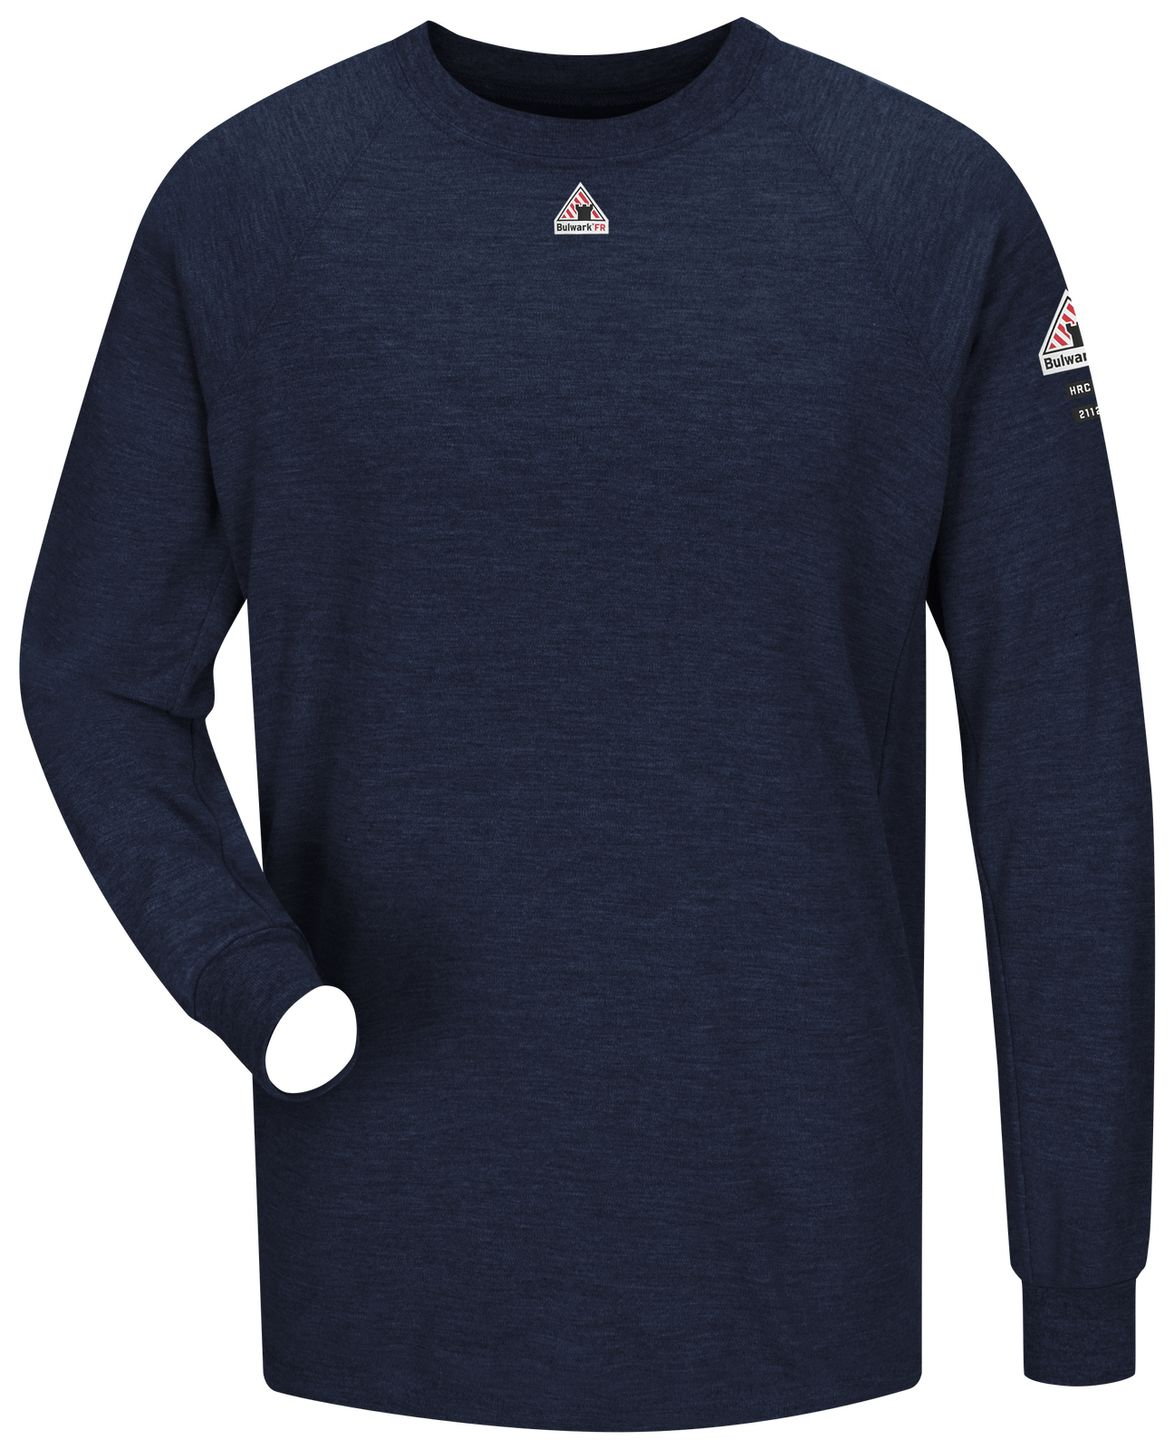 bulwark-fr-long-sleeve-smt2-performance-t-shirt-cooltouch-2-navy-front.jpg